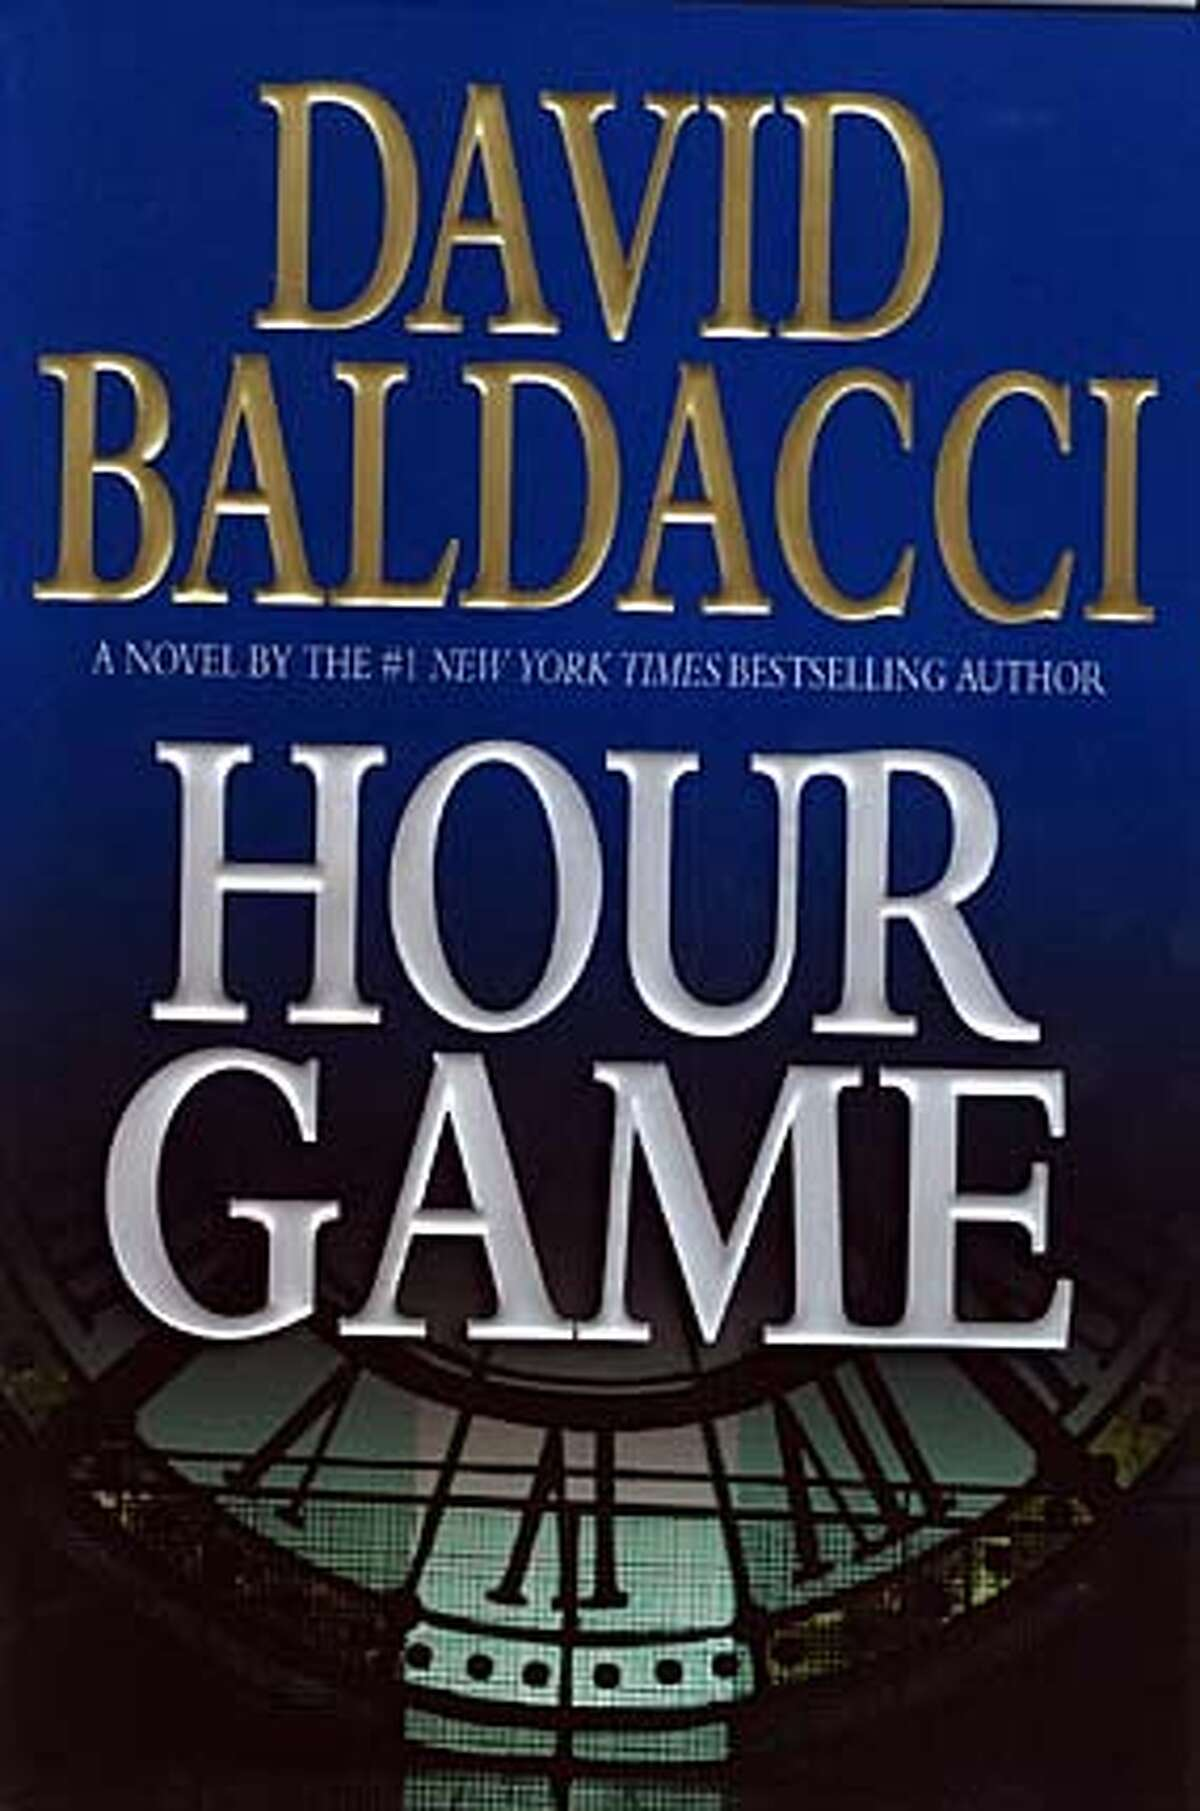 Hour Game By David Baldacci BookReview#BookReview#Chronicle#11-07-2004#ALL#Advance#M2#0422449979 BookReview#BookReview#Chronicle#11-07-2004#ALL#Advance#M2#0422449979